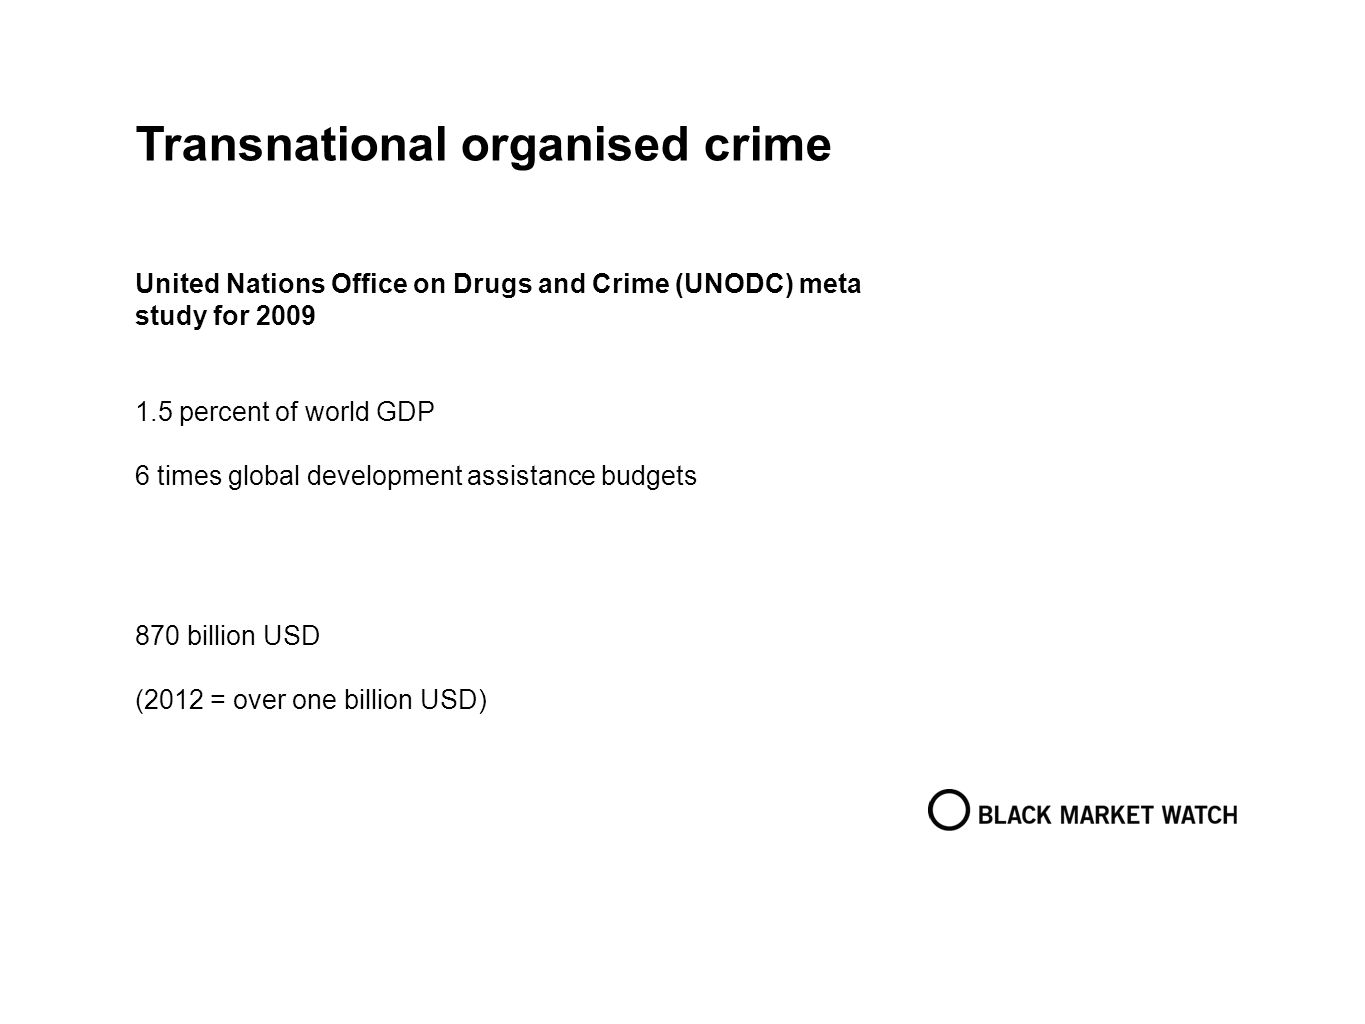 Transnational organised crime United Nations Office on Drugs and Crime (UNODC) meta study for 2009 1.5 percent of world GDP 6 times global development